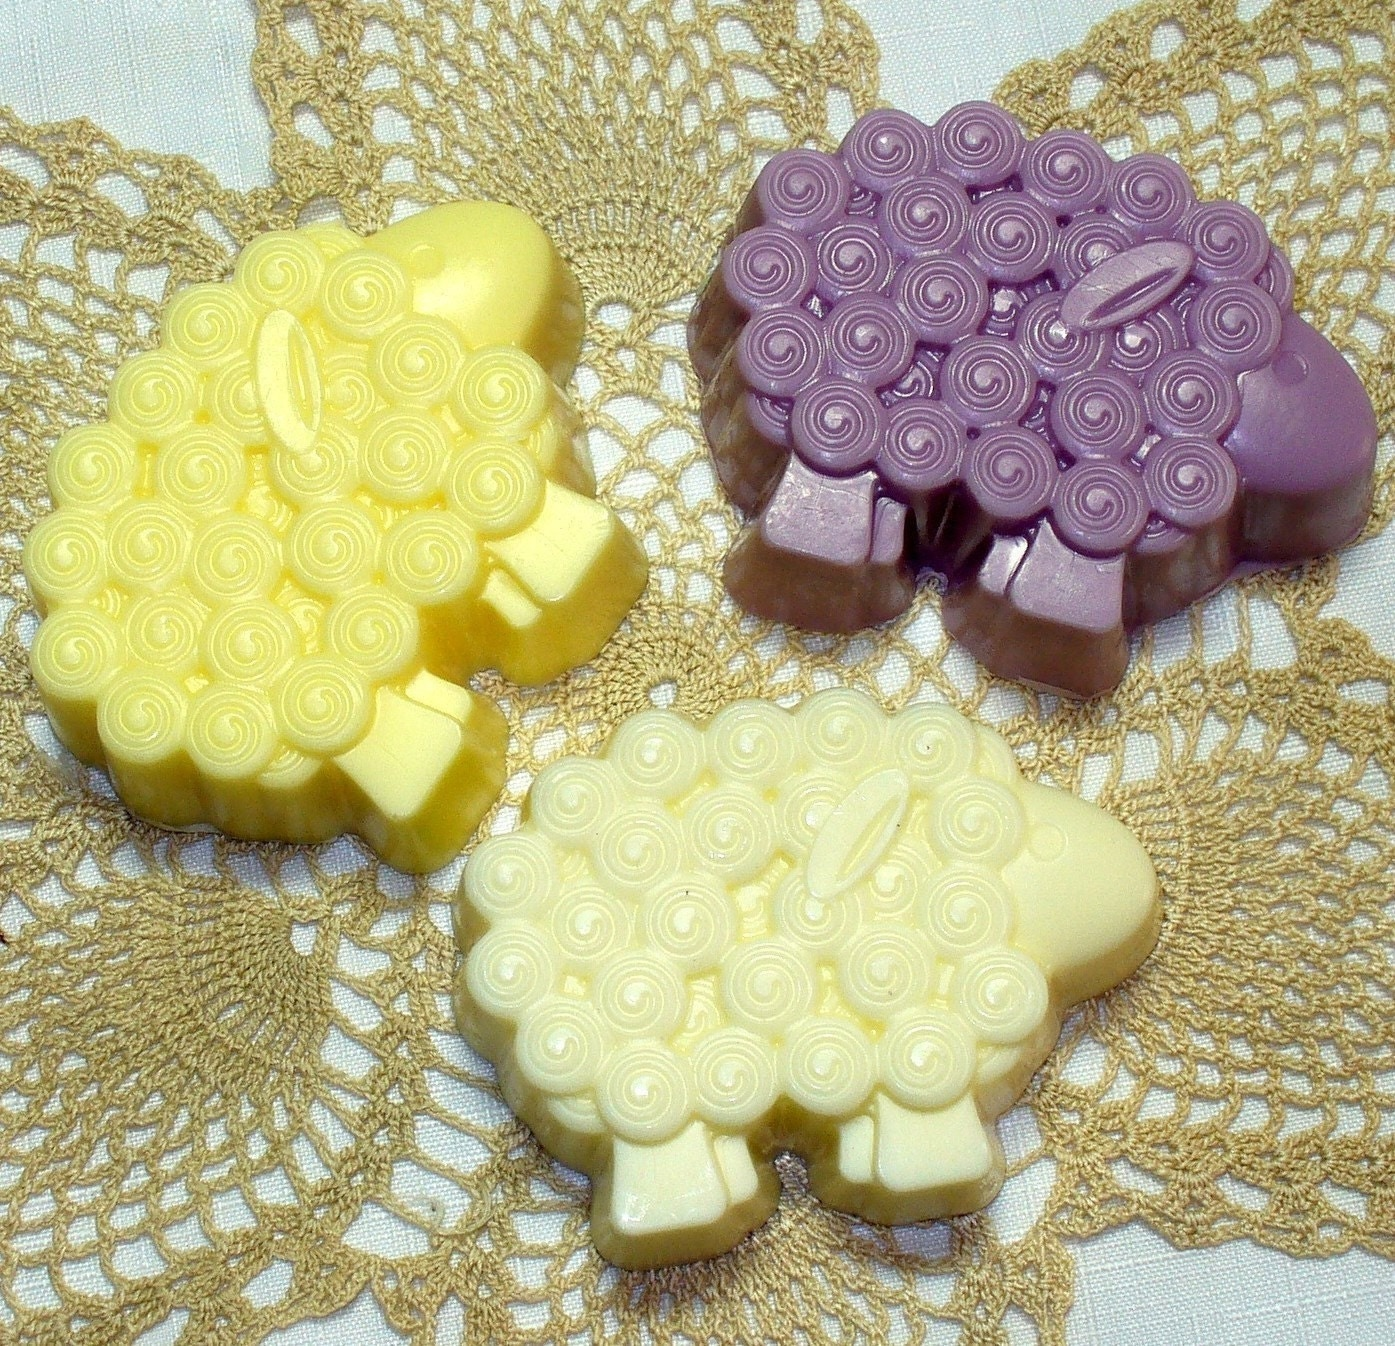 Kids Sheep Soap - Set of Three Sheep Shaped Soaps - You Pick the Scent - STORE WIDE SALE